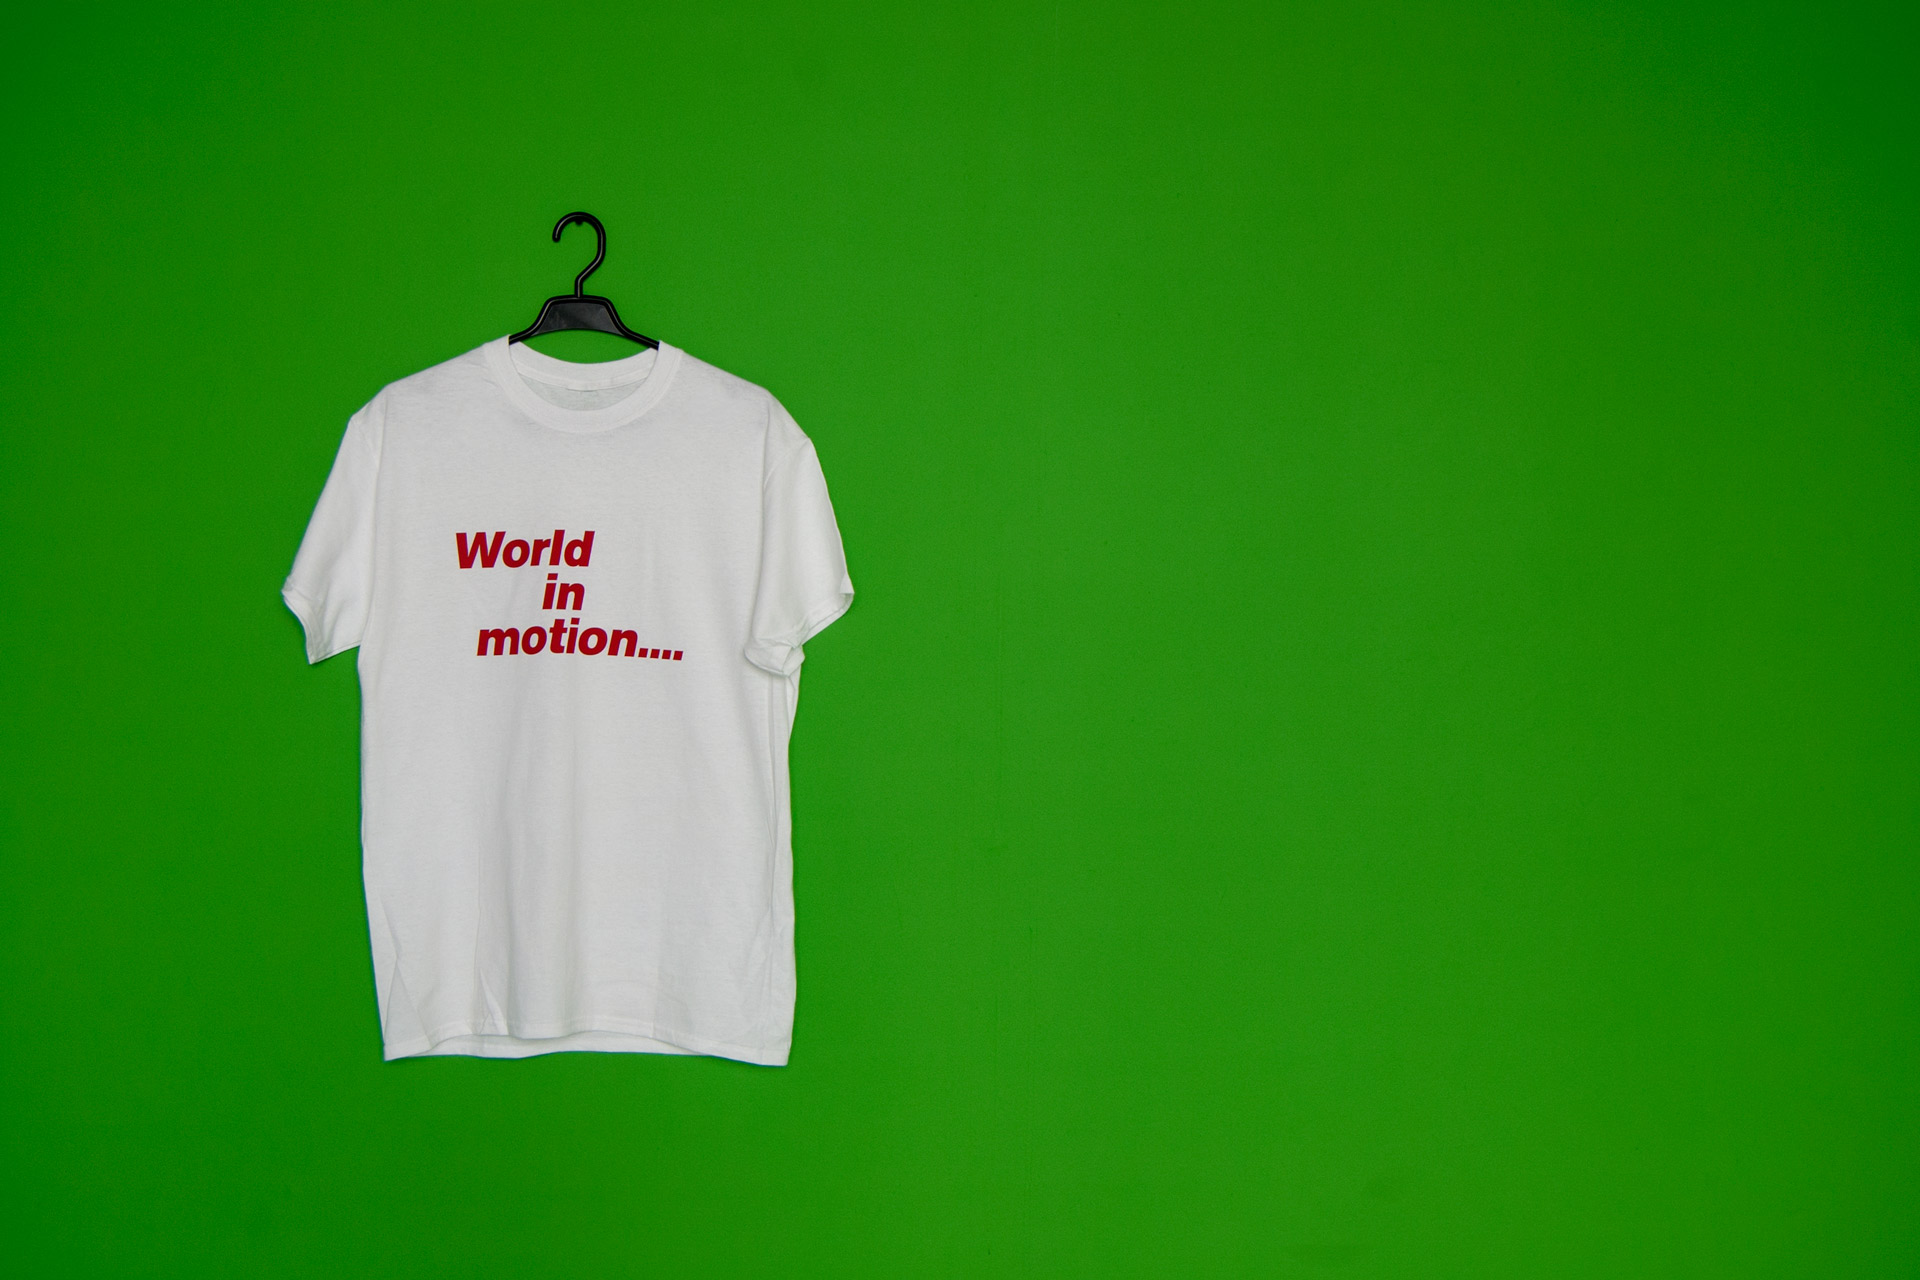 worldinmotion_green_1920